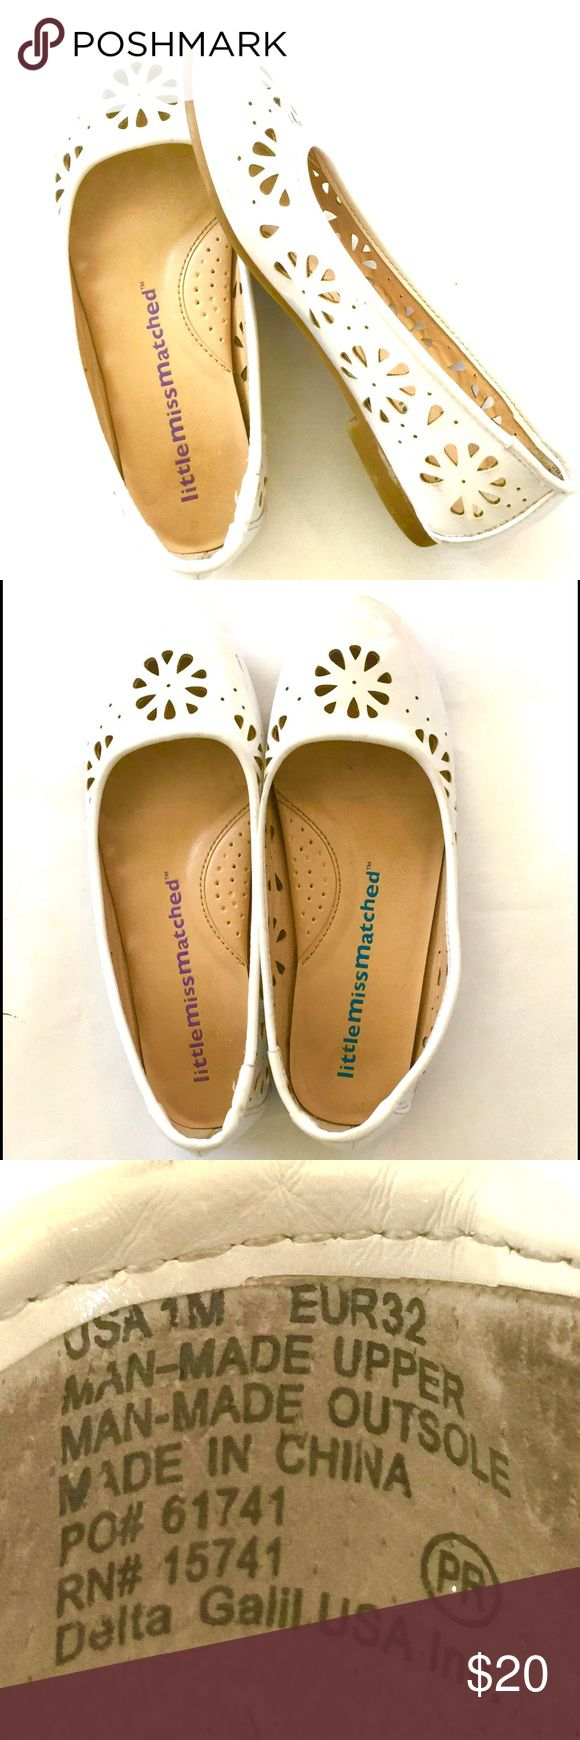 Little Miss Matched White Dress Shoes in size 1 These are 100% authentic Little Miss Matched dress shoes, purchased at the store.  They are beautiful, comfy, and clean up nicely.  Great for holidays, church, School, weddings. Little Miss Matched Shoes Dress Shoes